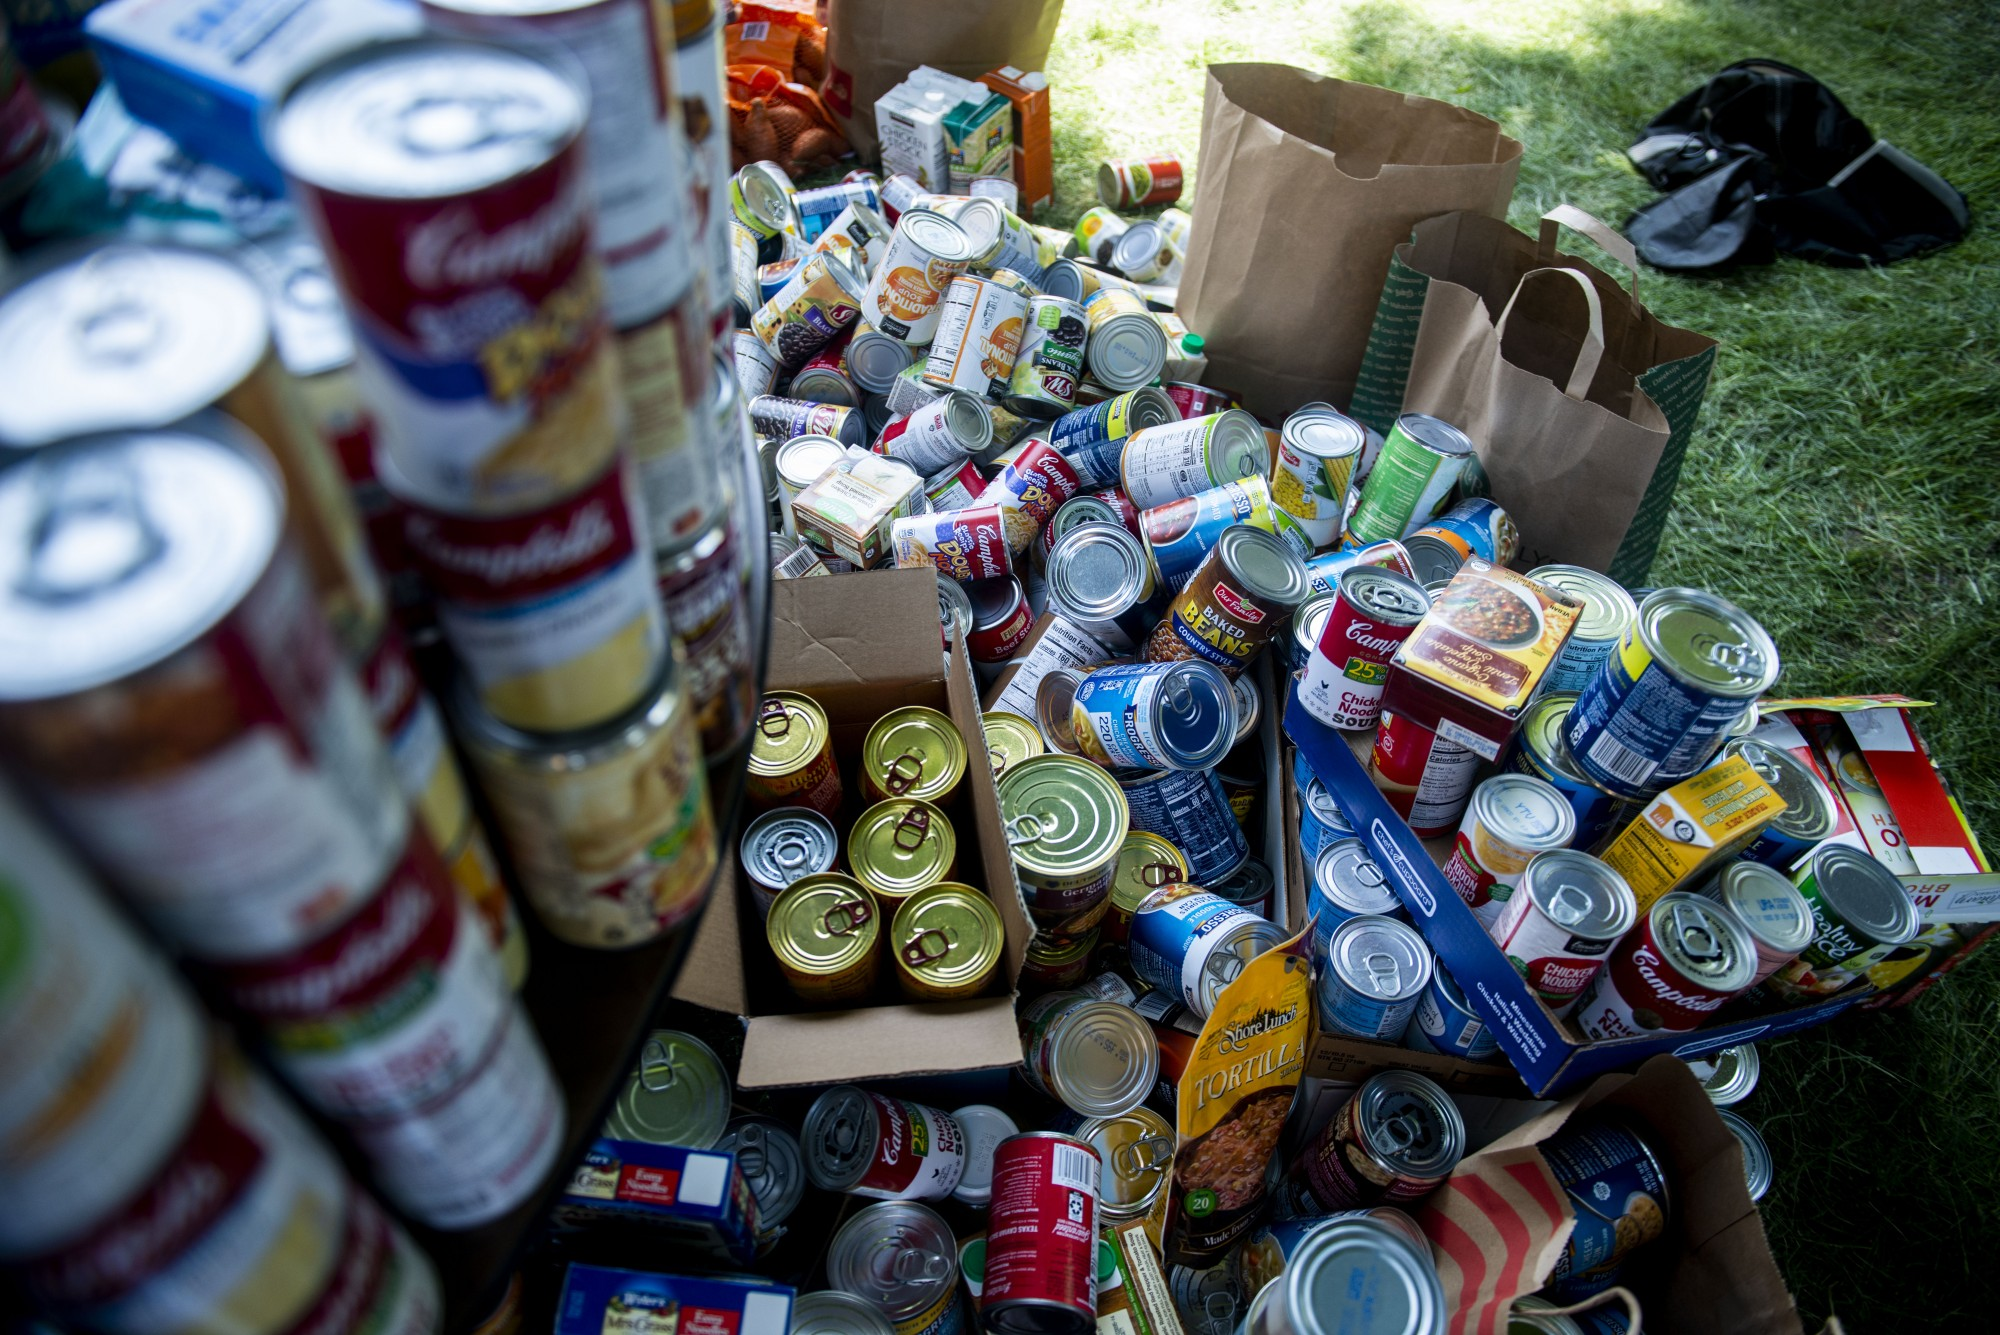 Donated goods overflow anticipated storage at Holy Trinity Lutheran Church on Sunday, May 31.